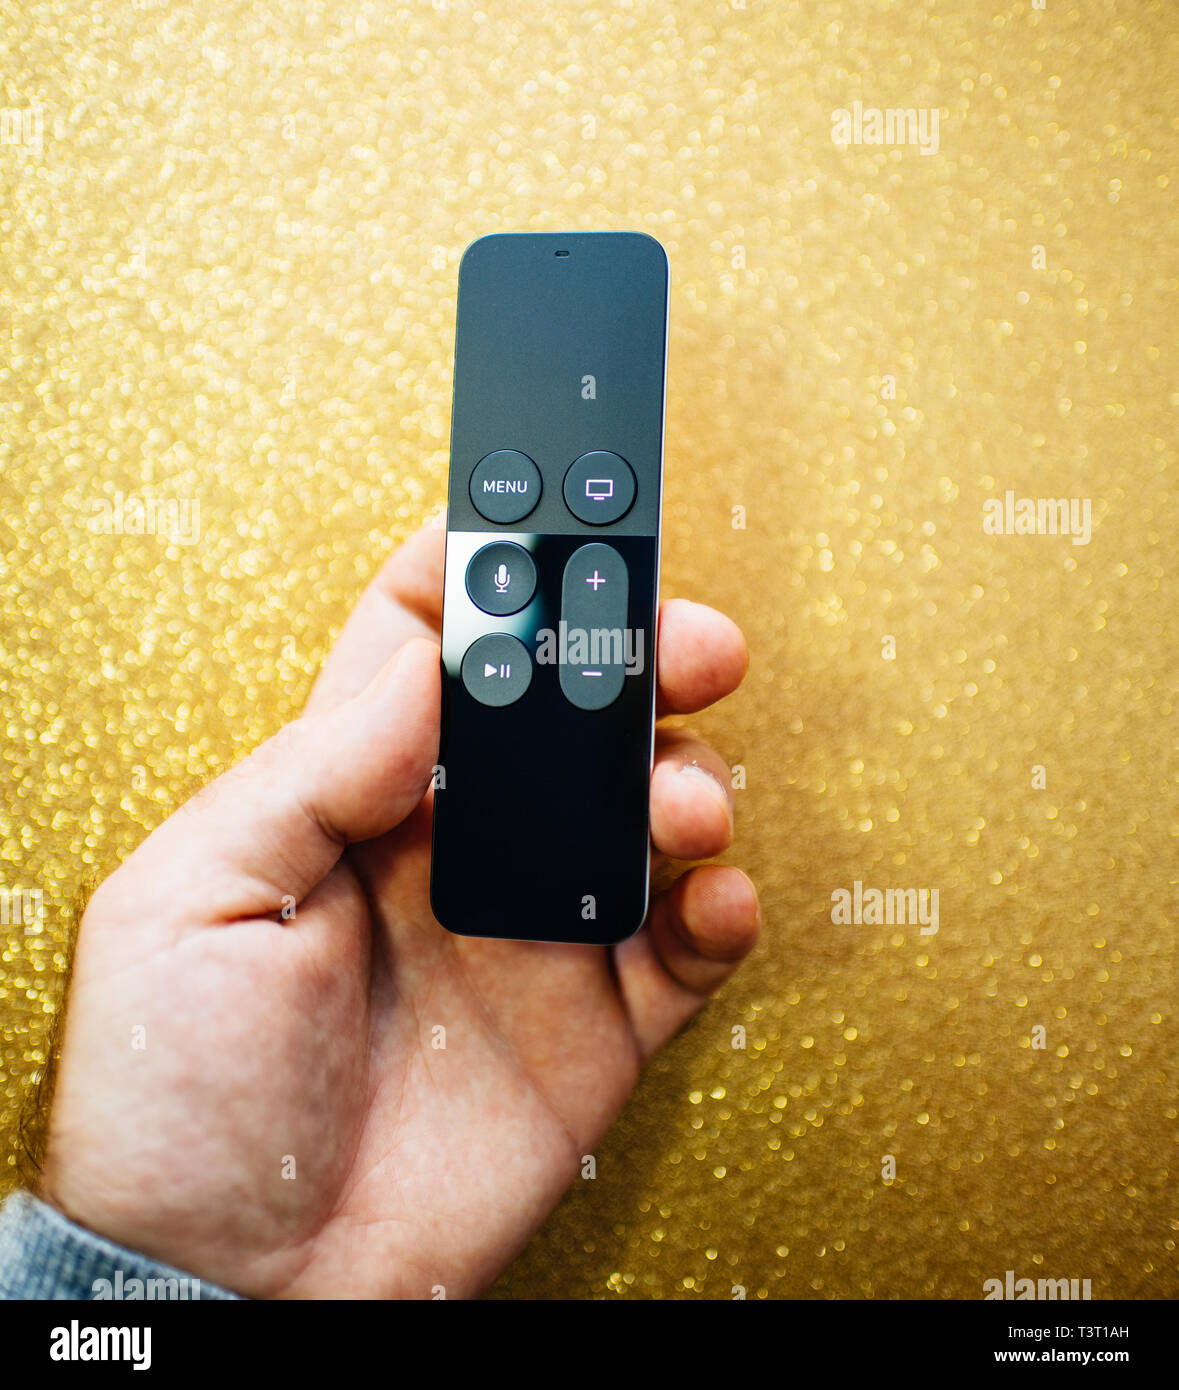 Paris, France - 25 Mar 2019: Man hand holding against modern sparkle holiday yellow background remote control of Apple TV 4k player with Siri assistant - Stock Image